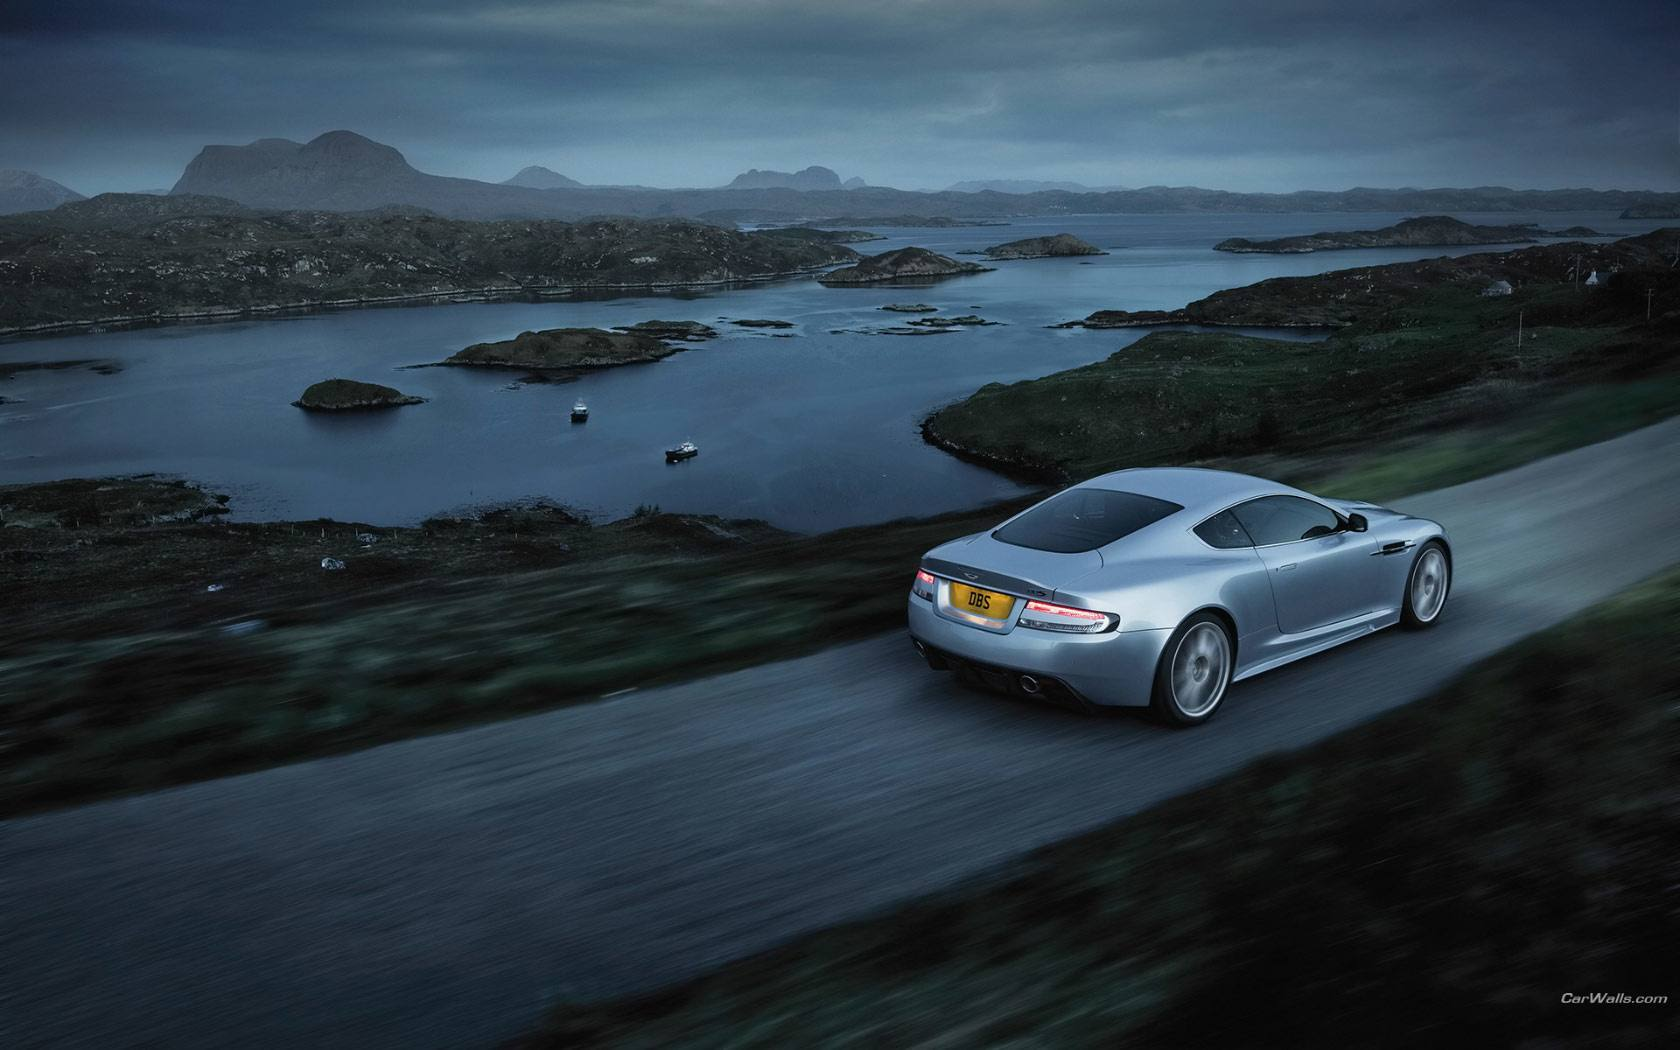 Aston Martin DBS lake